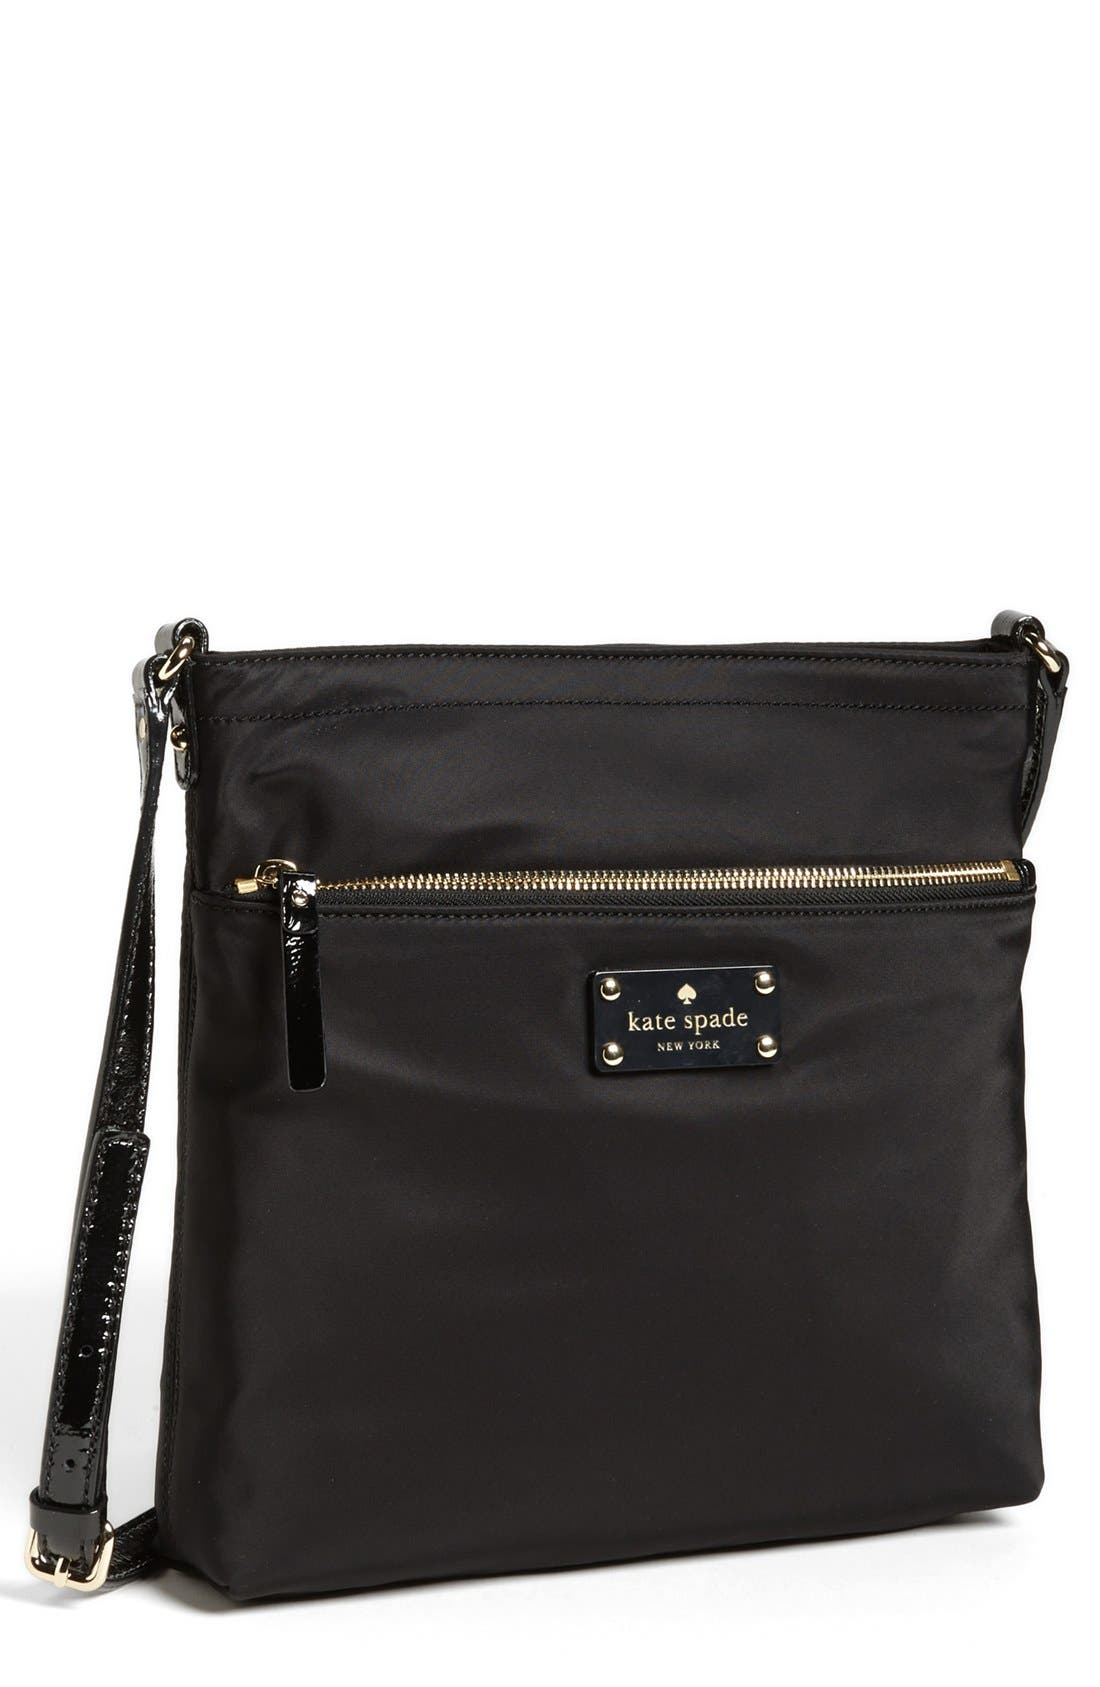 Alternate Image 1 Selected - kate spade new york 'jan' nylon crossbody bag